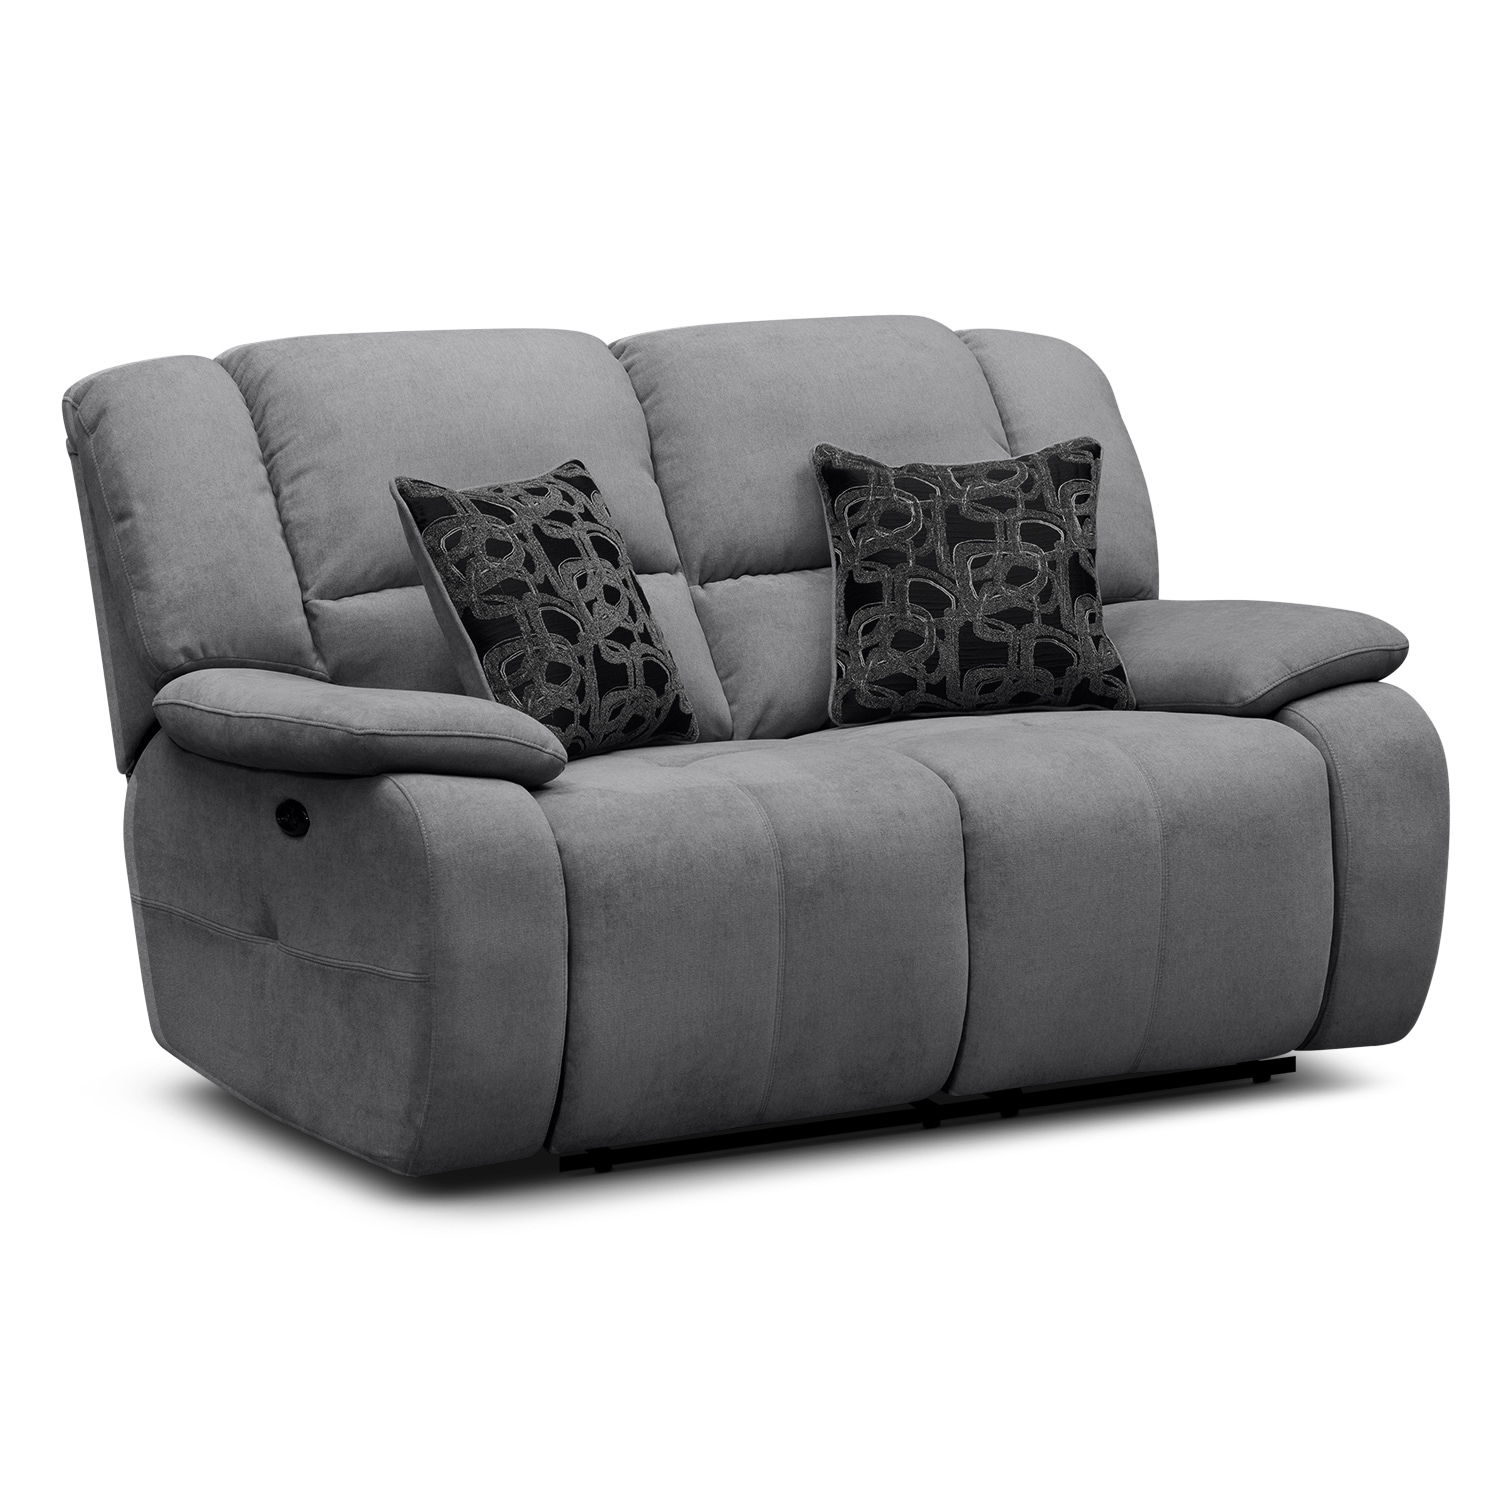 Destin gray upholstery power reclining loveseat value city furniture Reclining loveseat sale